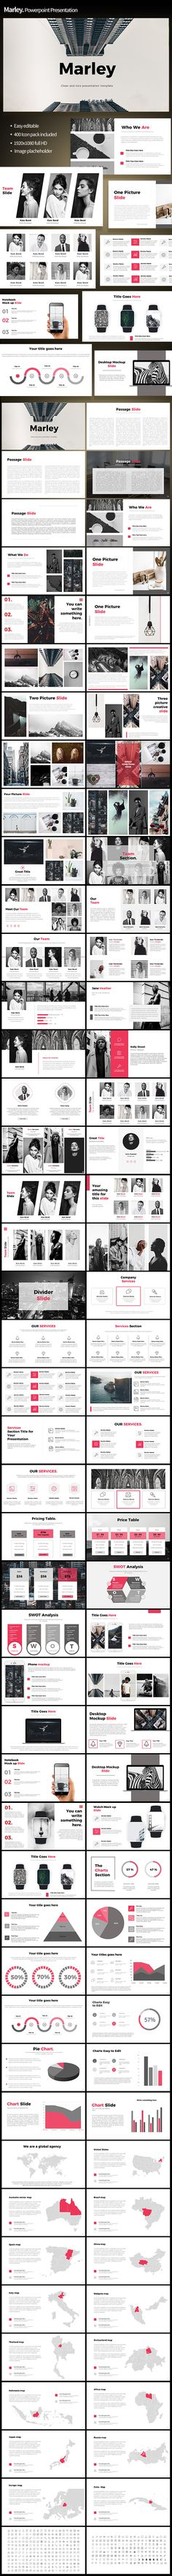 855 best powerpoint template images on pinterest keynote template marley powerpoint template toneelgroepblik Image collections